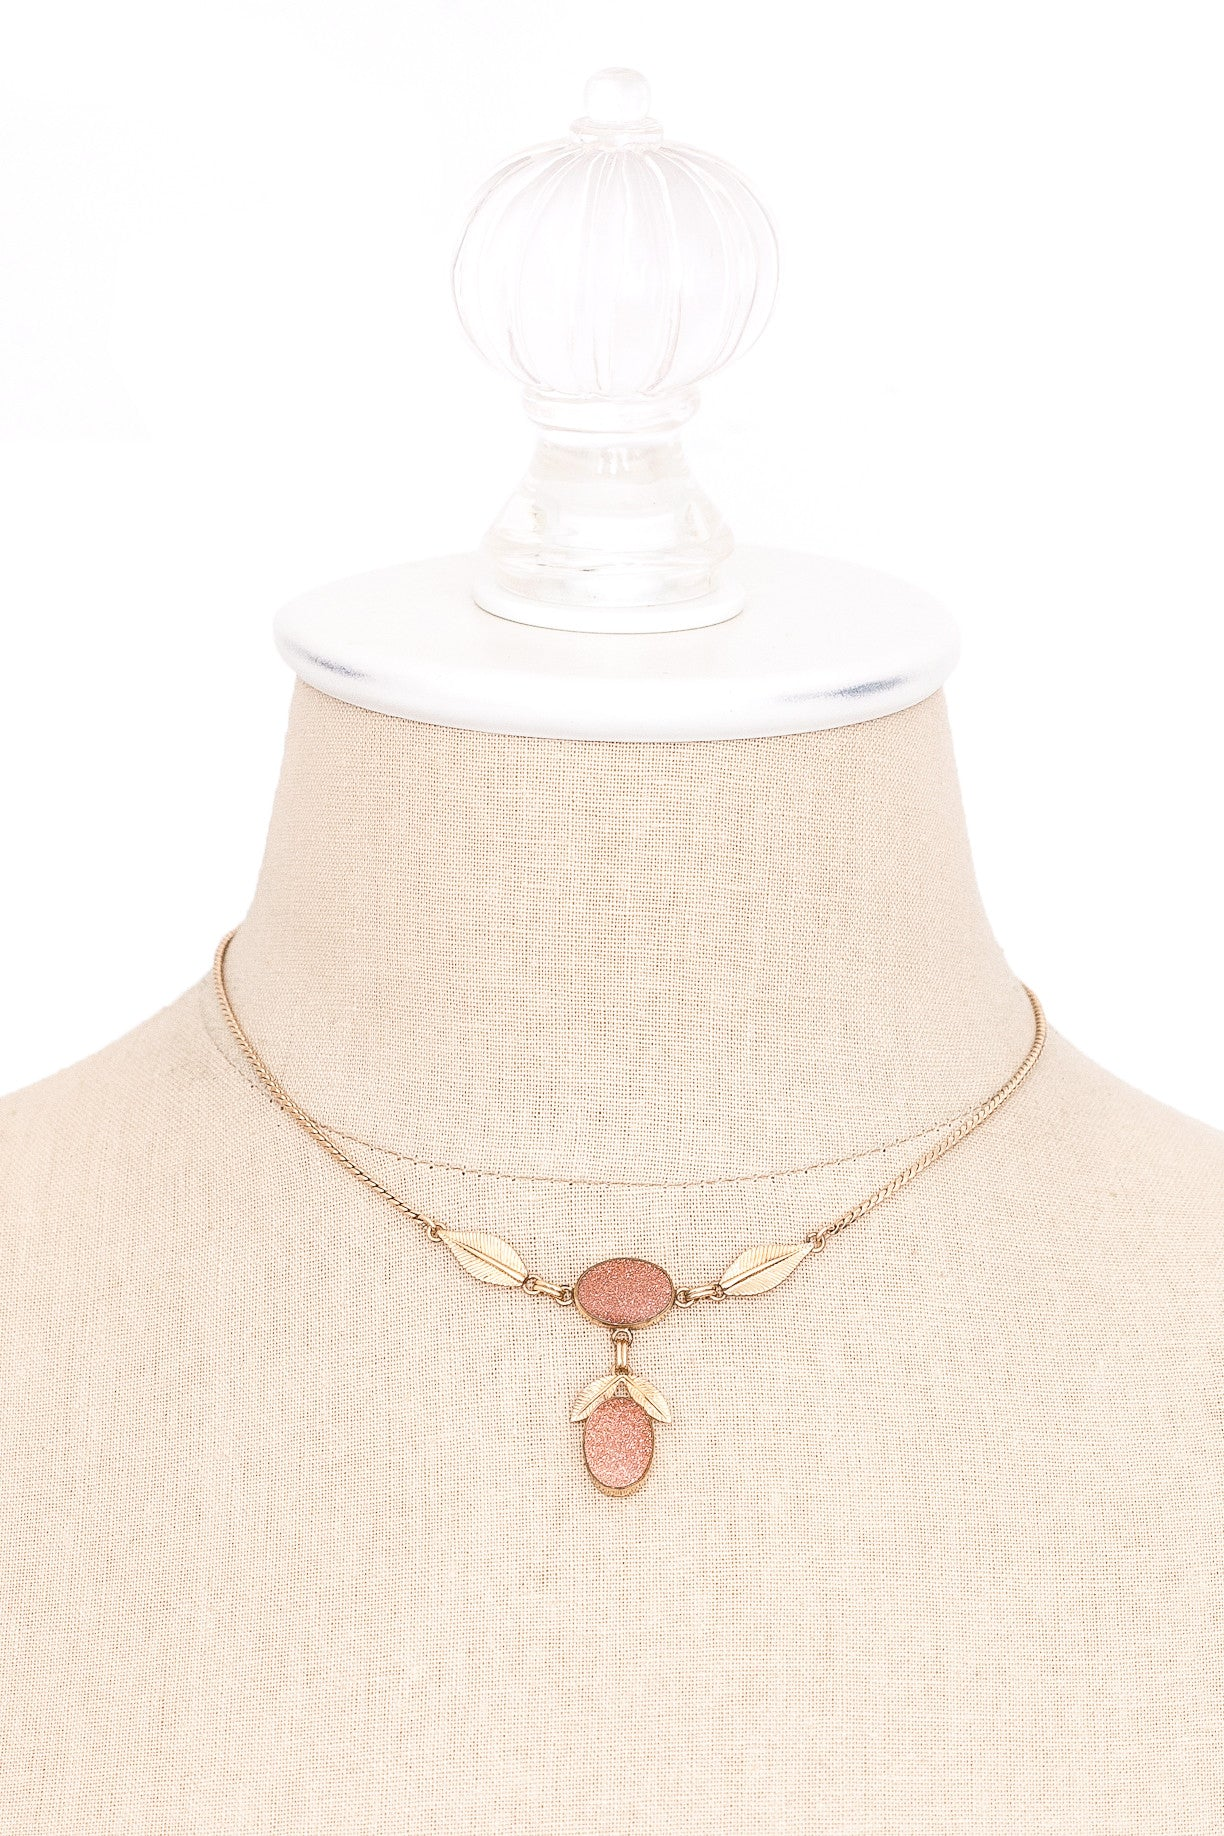 60's__Vintage__Dainty Drop Necklace